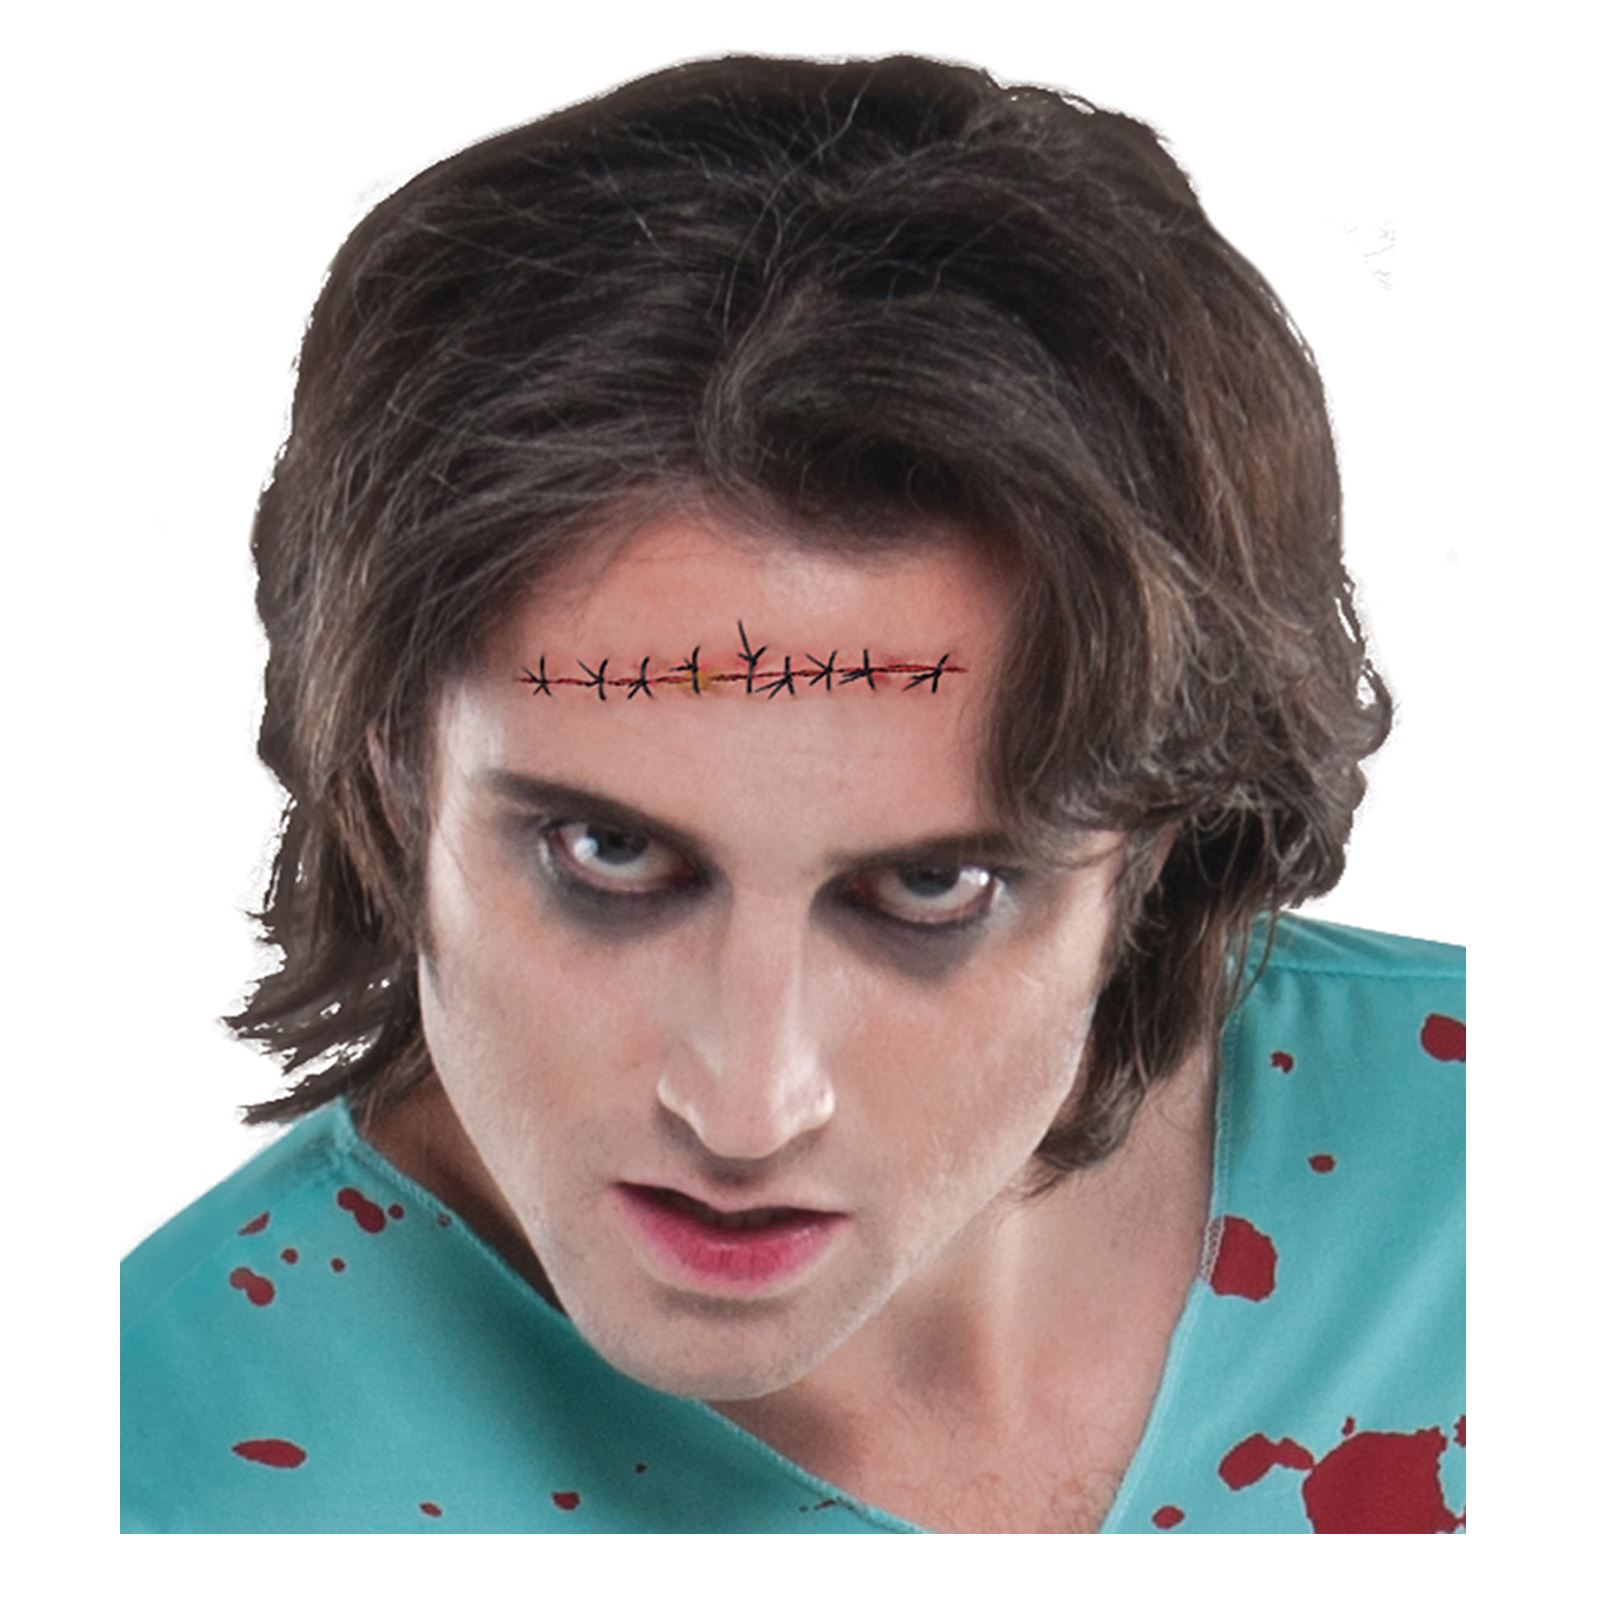 d52119c2a823a Halloween Sinister Surgery Zombie Stitches Wound SFX Accessory Gore ...